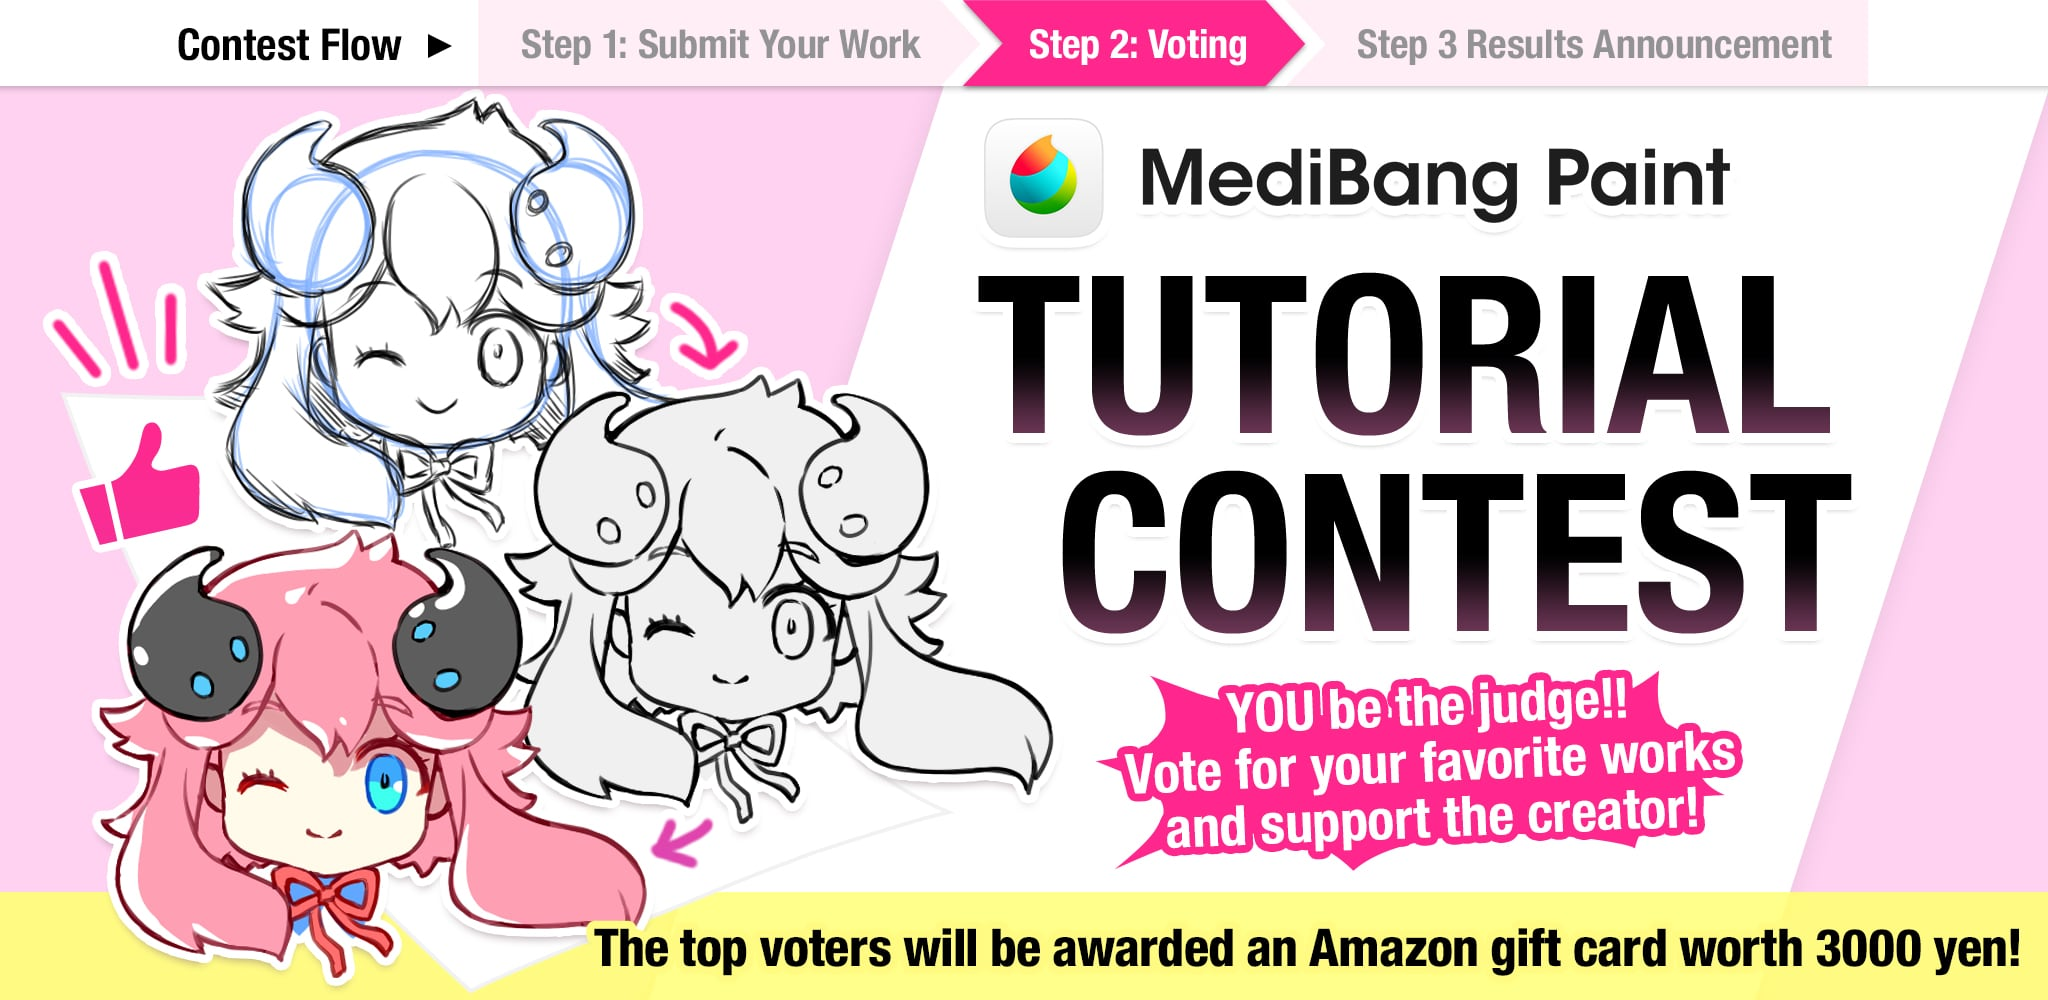 MediBang Paint Tutorial Contest Nomination Announcement   Contest - ART street by MediBang